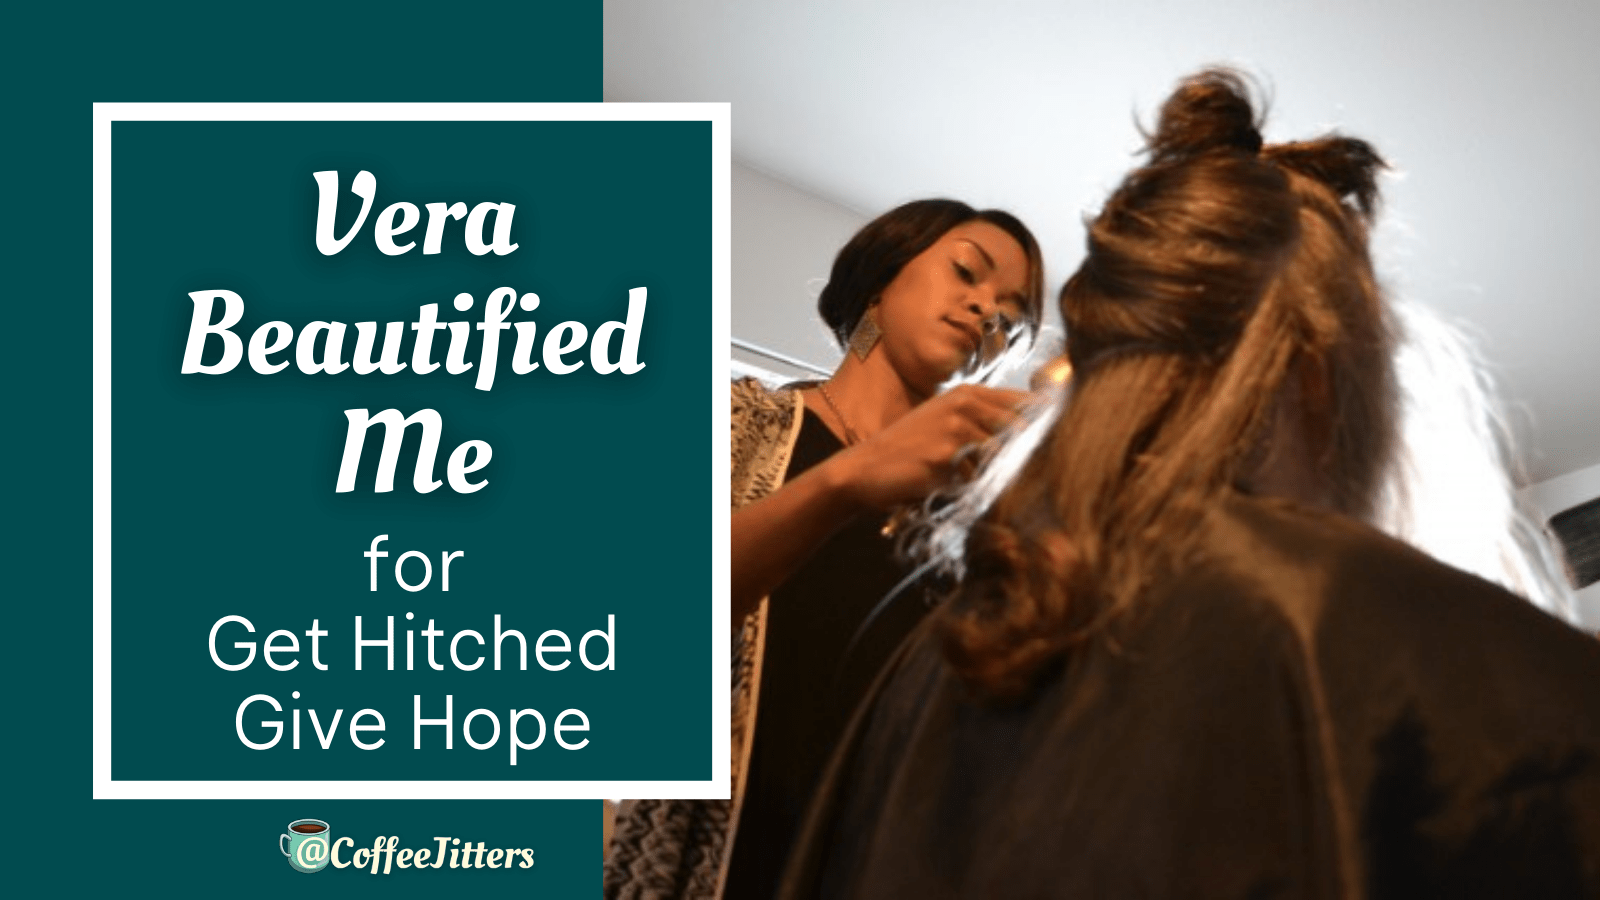 Vera Beautified Me for Get Hitched Give Hope